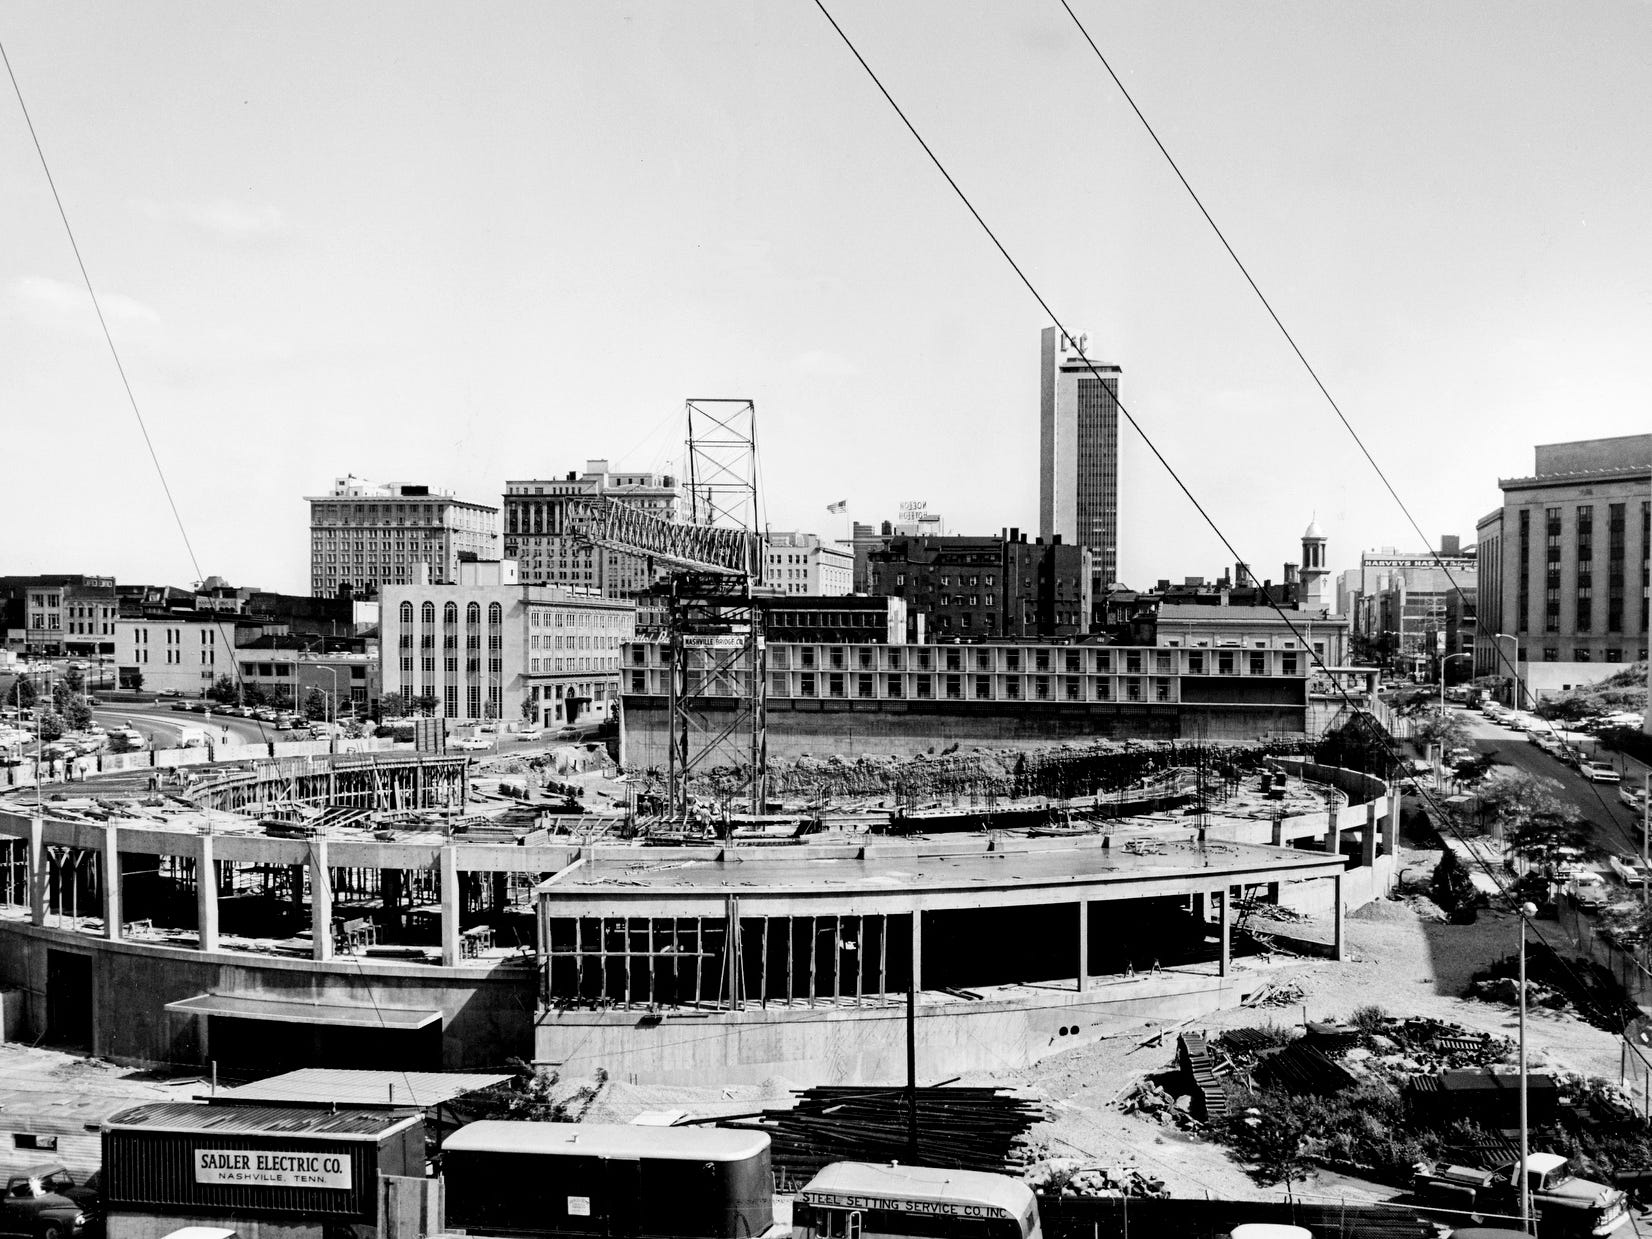 Nashville's $5 million Municipal Auditorium begins to take shape May 15, 1961, as construction workers strive to make up days lost during winter weather. The auditorium, which will seat 10,800, is scheduled for completion in July 1962.